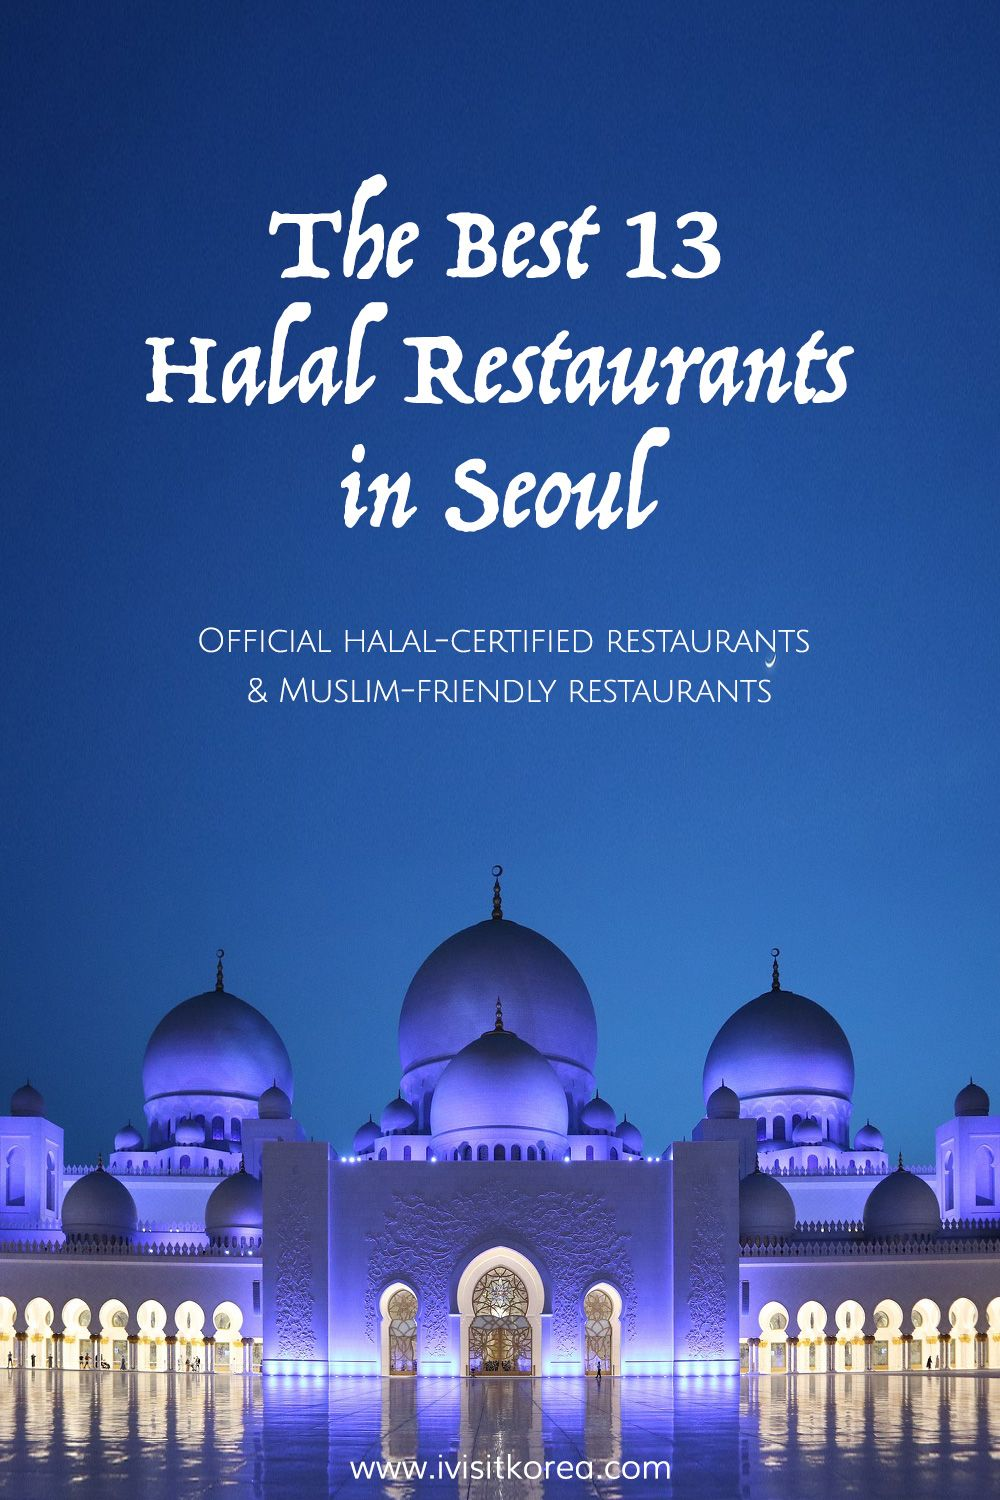 Official Halal Certified Restaurants In Seoul 2020